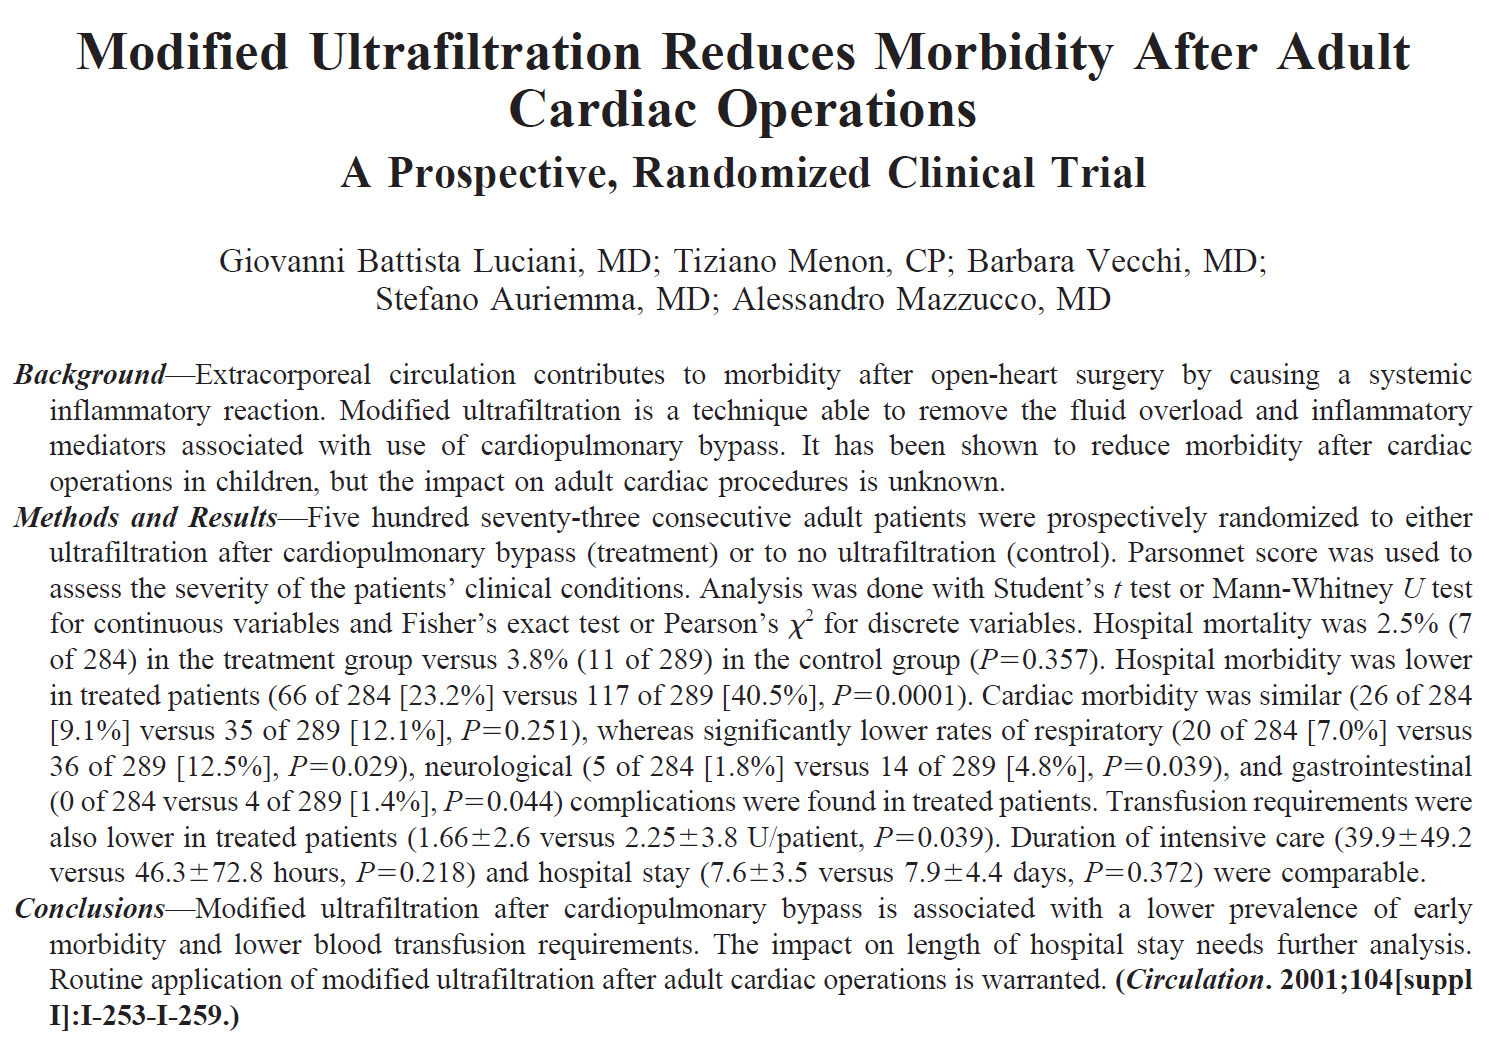 Modified ultrafiltration after cardiopulmonary bypass is associated with a lower prevalence of early morbidity and lower blood transfusion requirements.